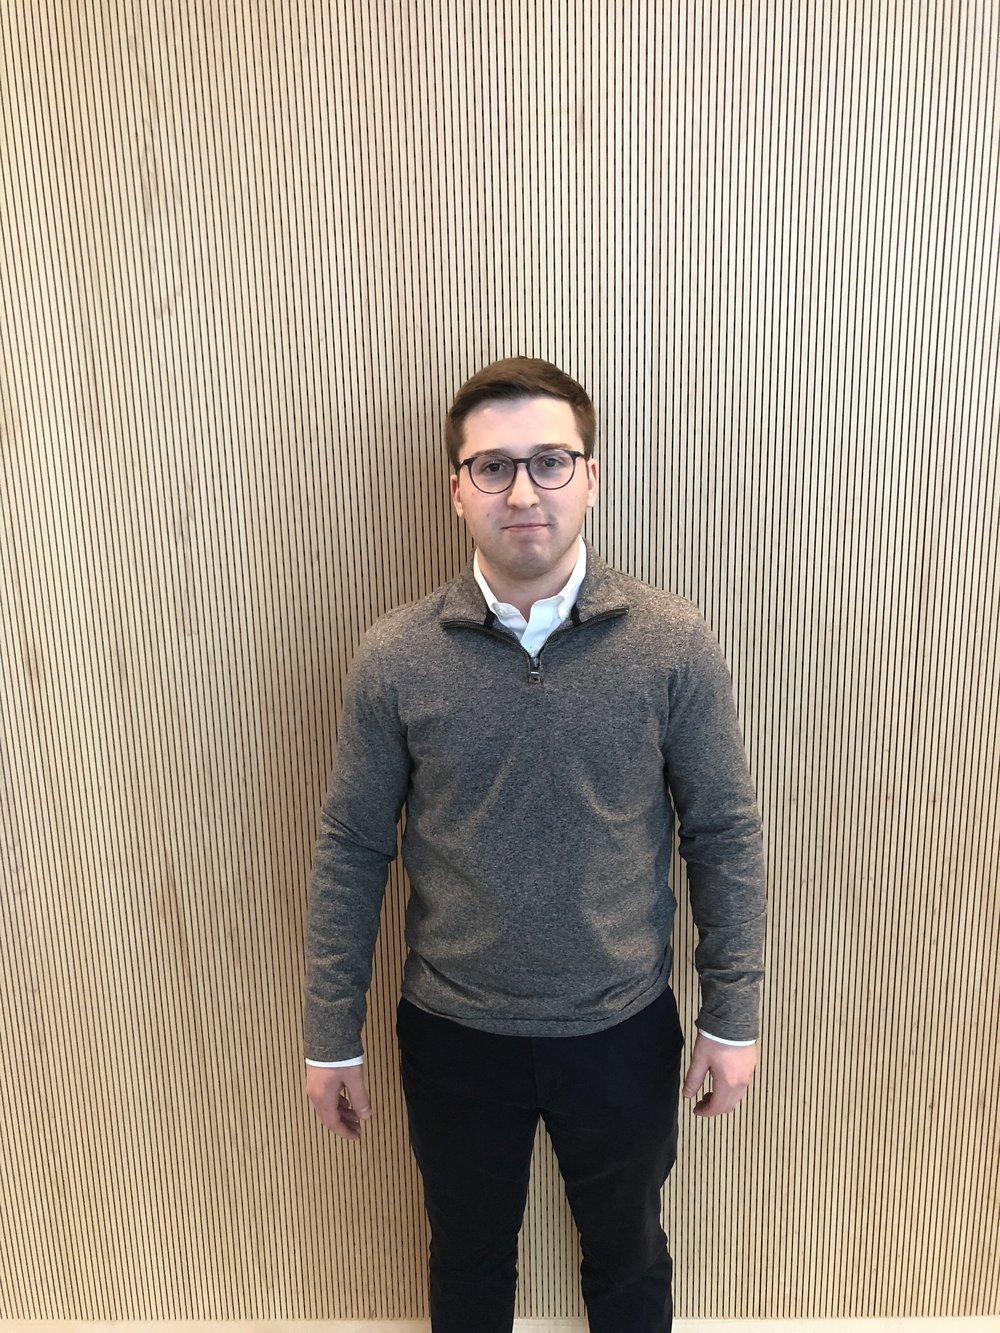 Sean is a senior at Duquesne University studying finance. He has been involved in the club hockey team for all four years, as well as the Duquesne Asset Management Club. In his free time, he enjoys watching hockey, and trying new restaurants in the city of Pittsburgh. While at GTE, Sean hopes to sharpen his finance and accounting skills and make new connections.